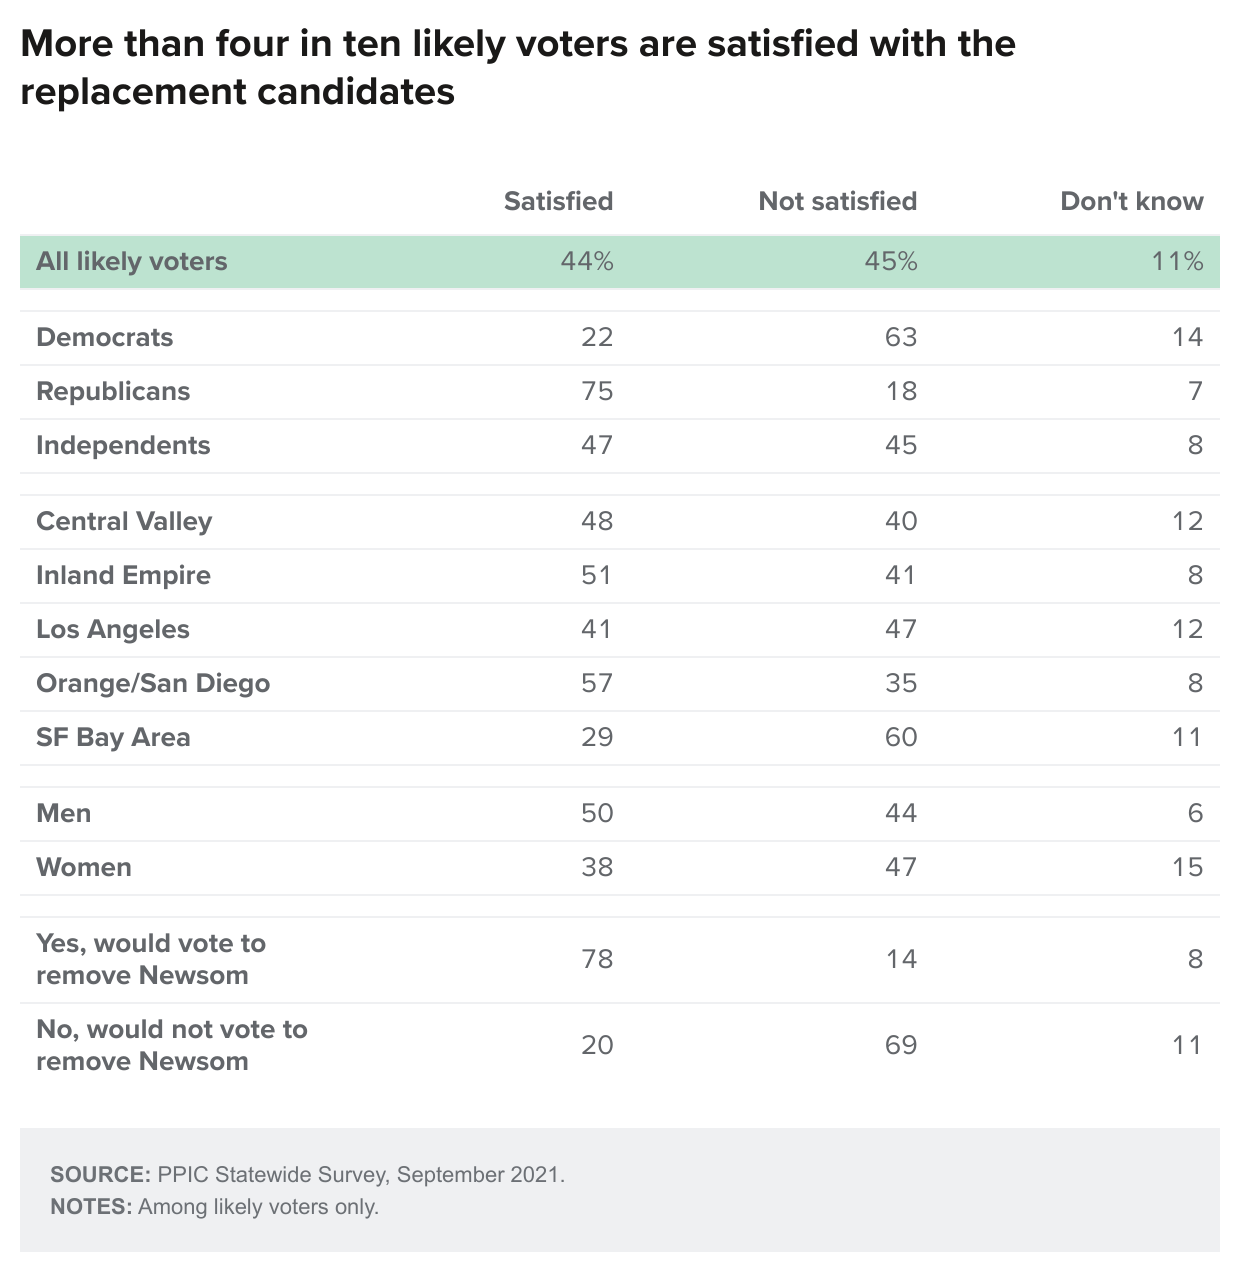 figure - More Than Four In Ten Likely Voters Are Satisfied With The Replacement Candidates